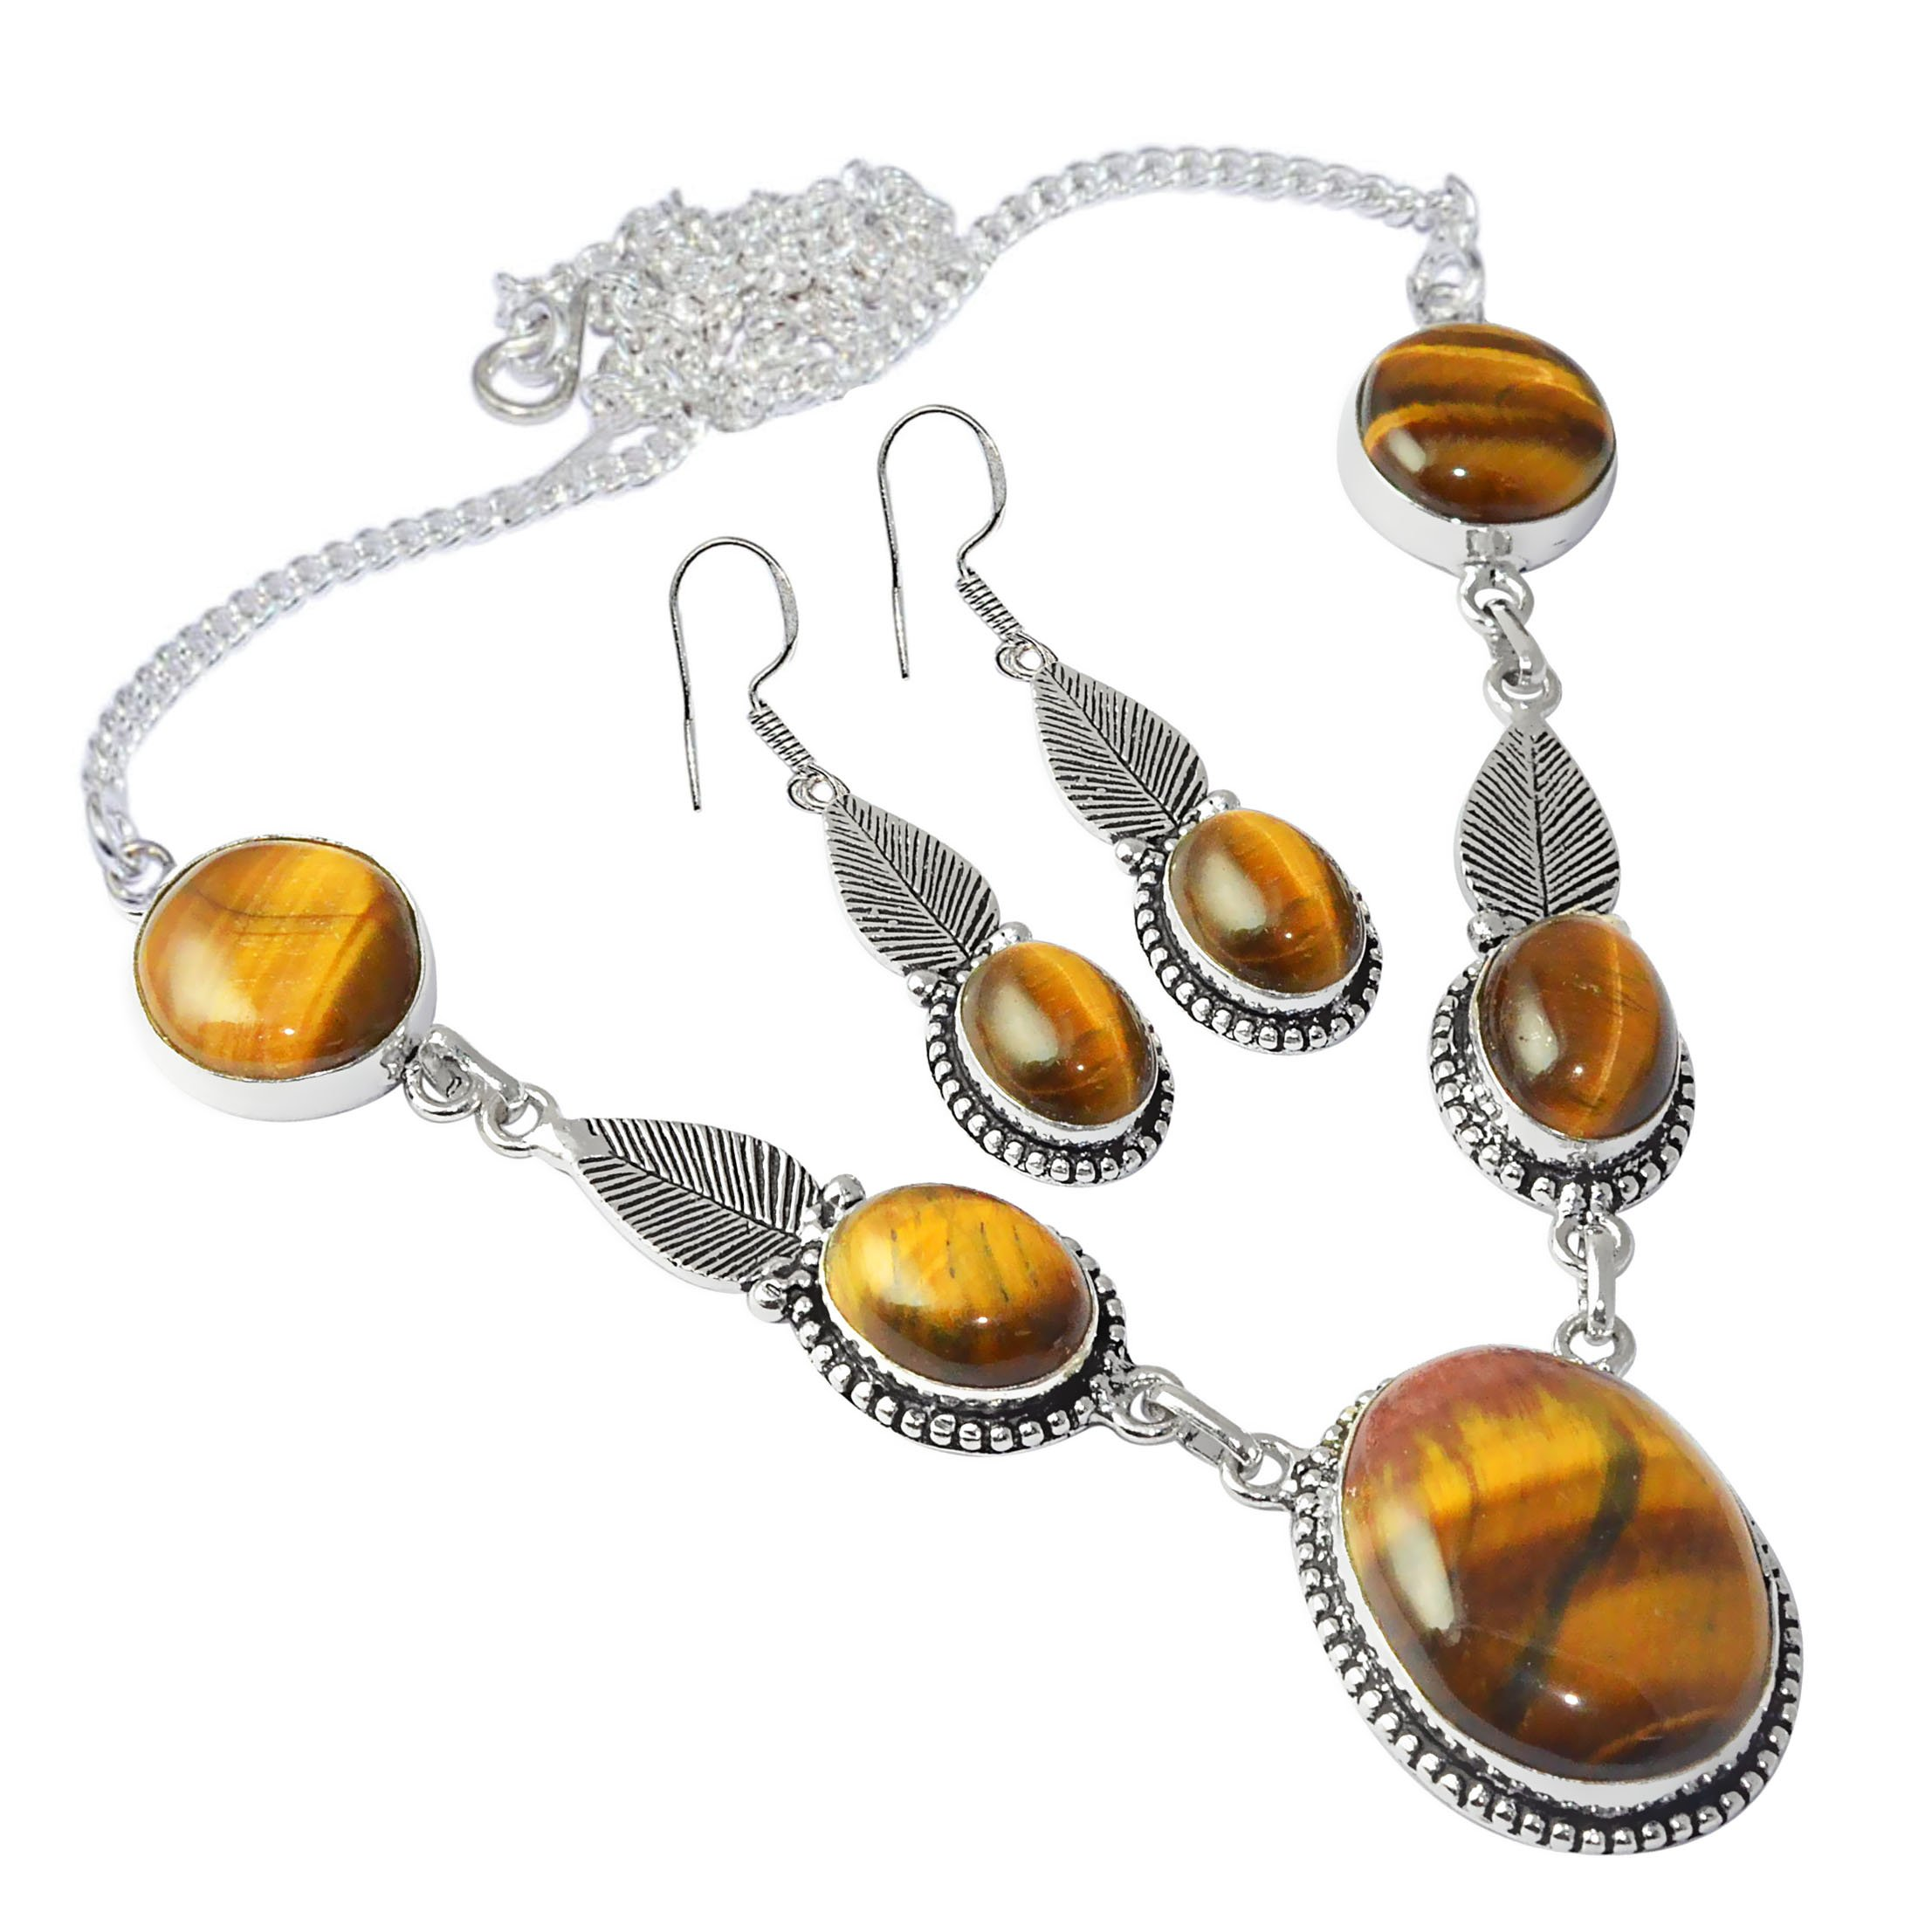 SIlVERART Genuine Cabochon Tiger Eye 925 Silver Plated (High Polished) Necklace Earring Sets